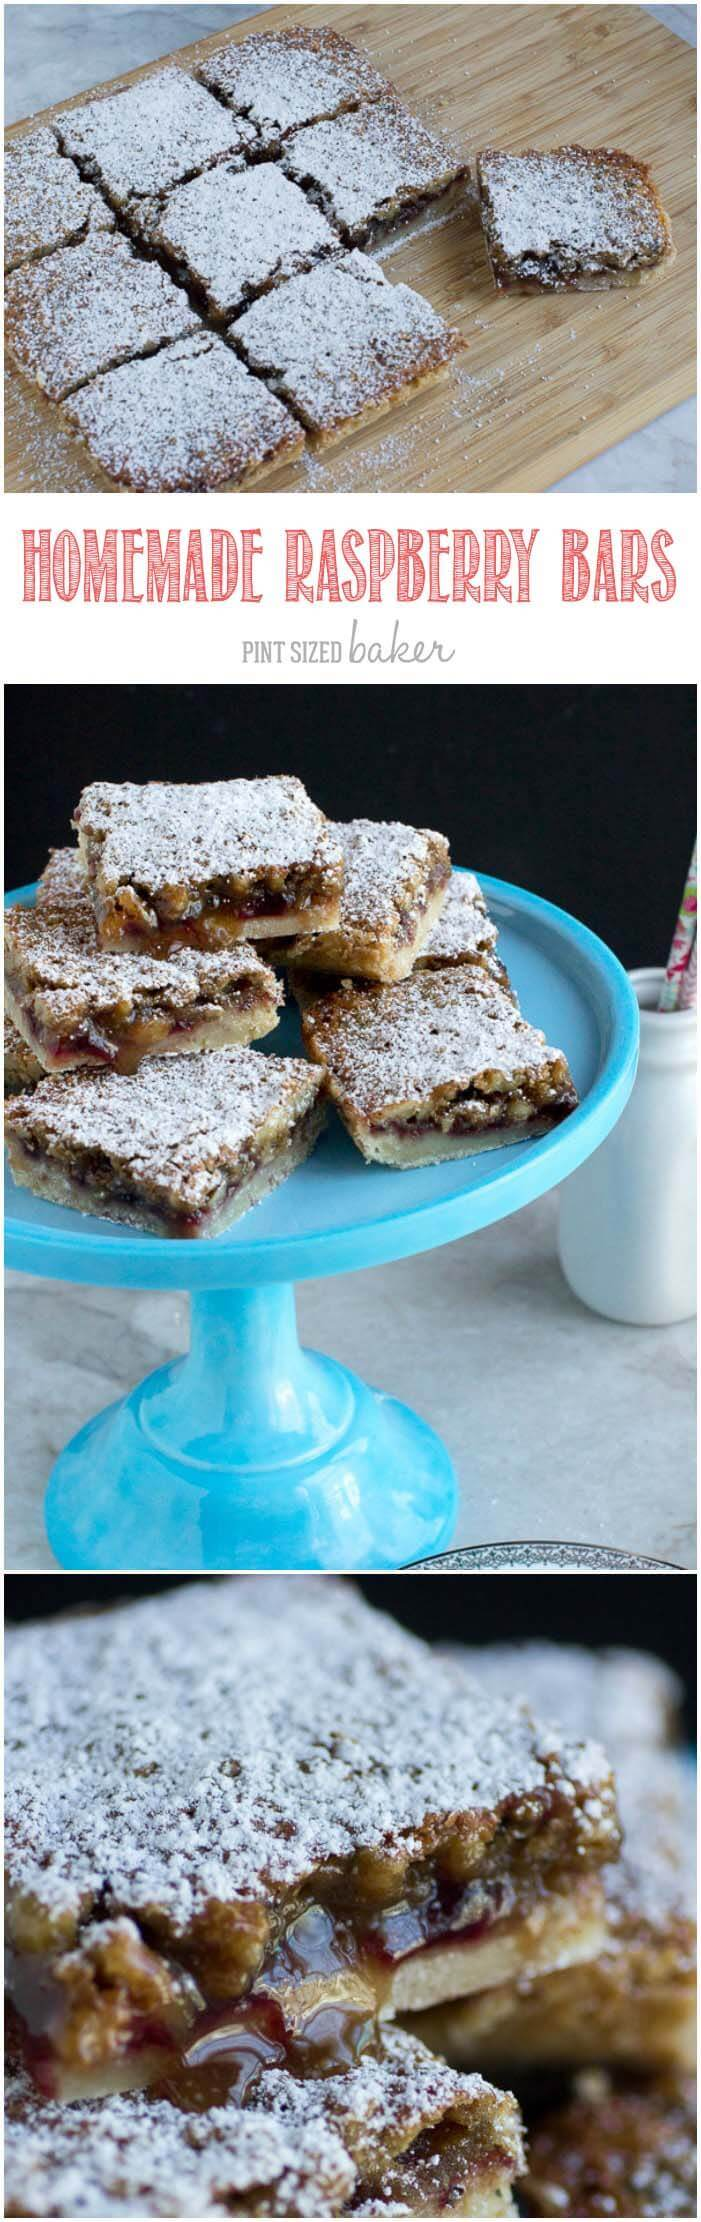 Homemade Walnut Raspberry Bars are the perfect mid-day treat with a cup of tea. Whip them up in under an hour.